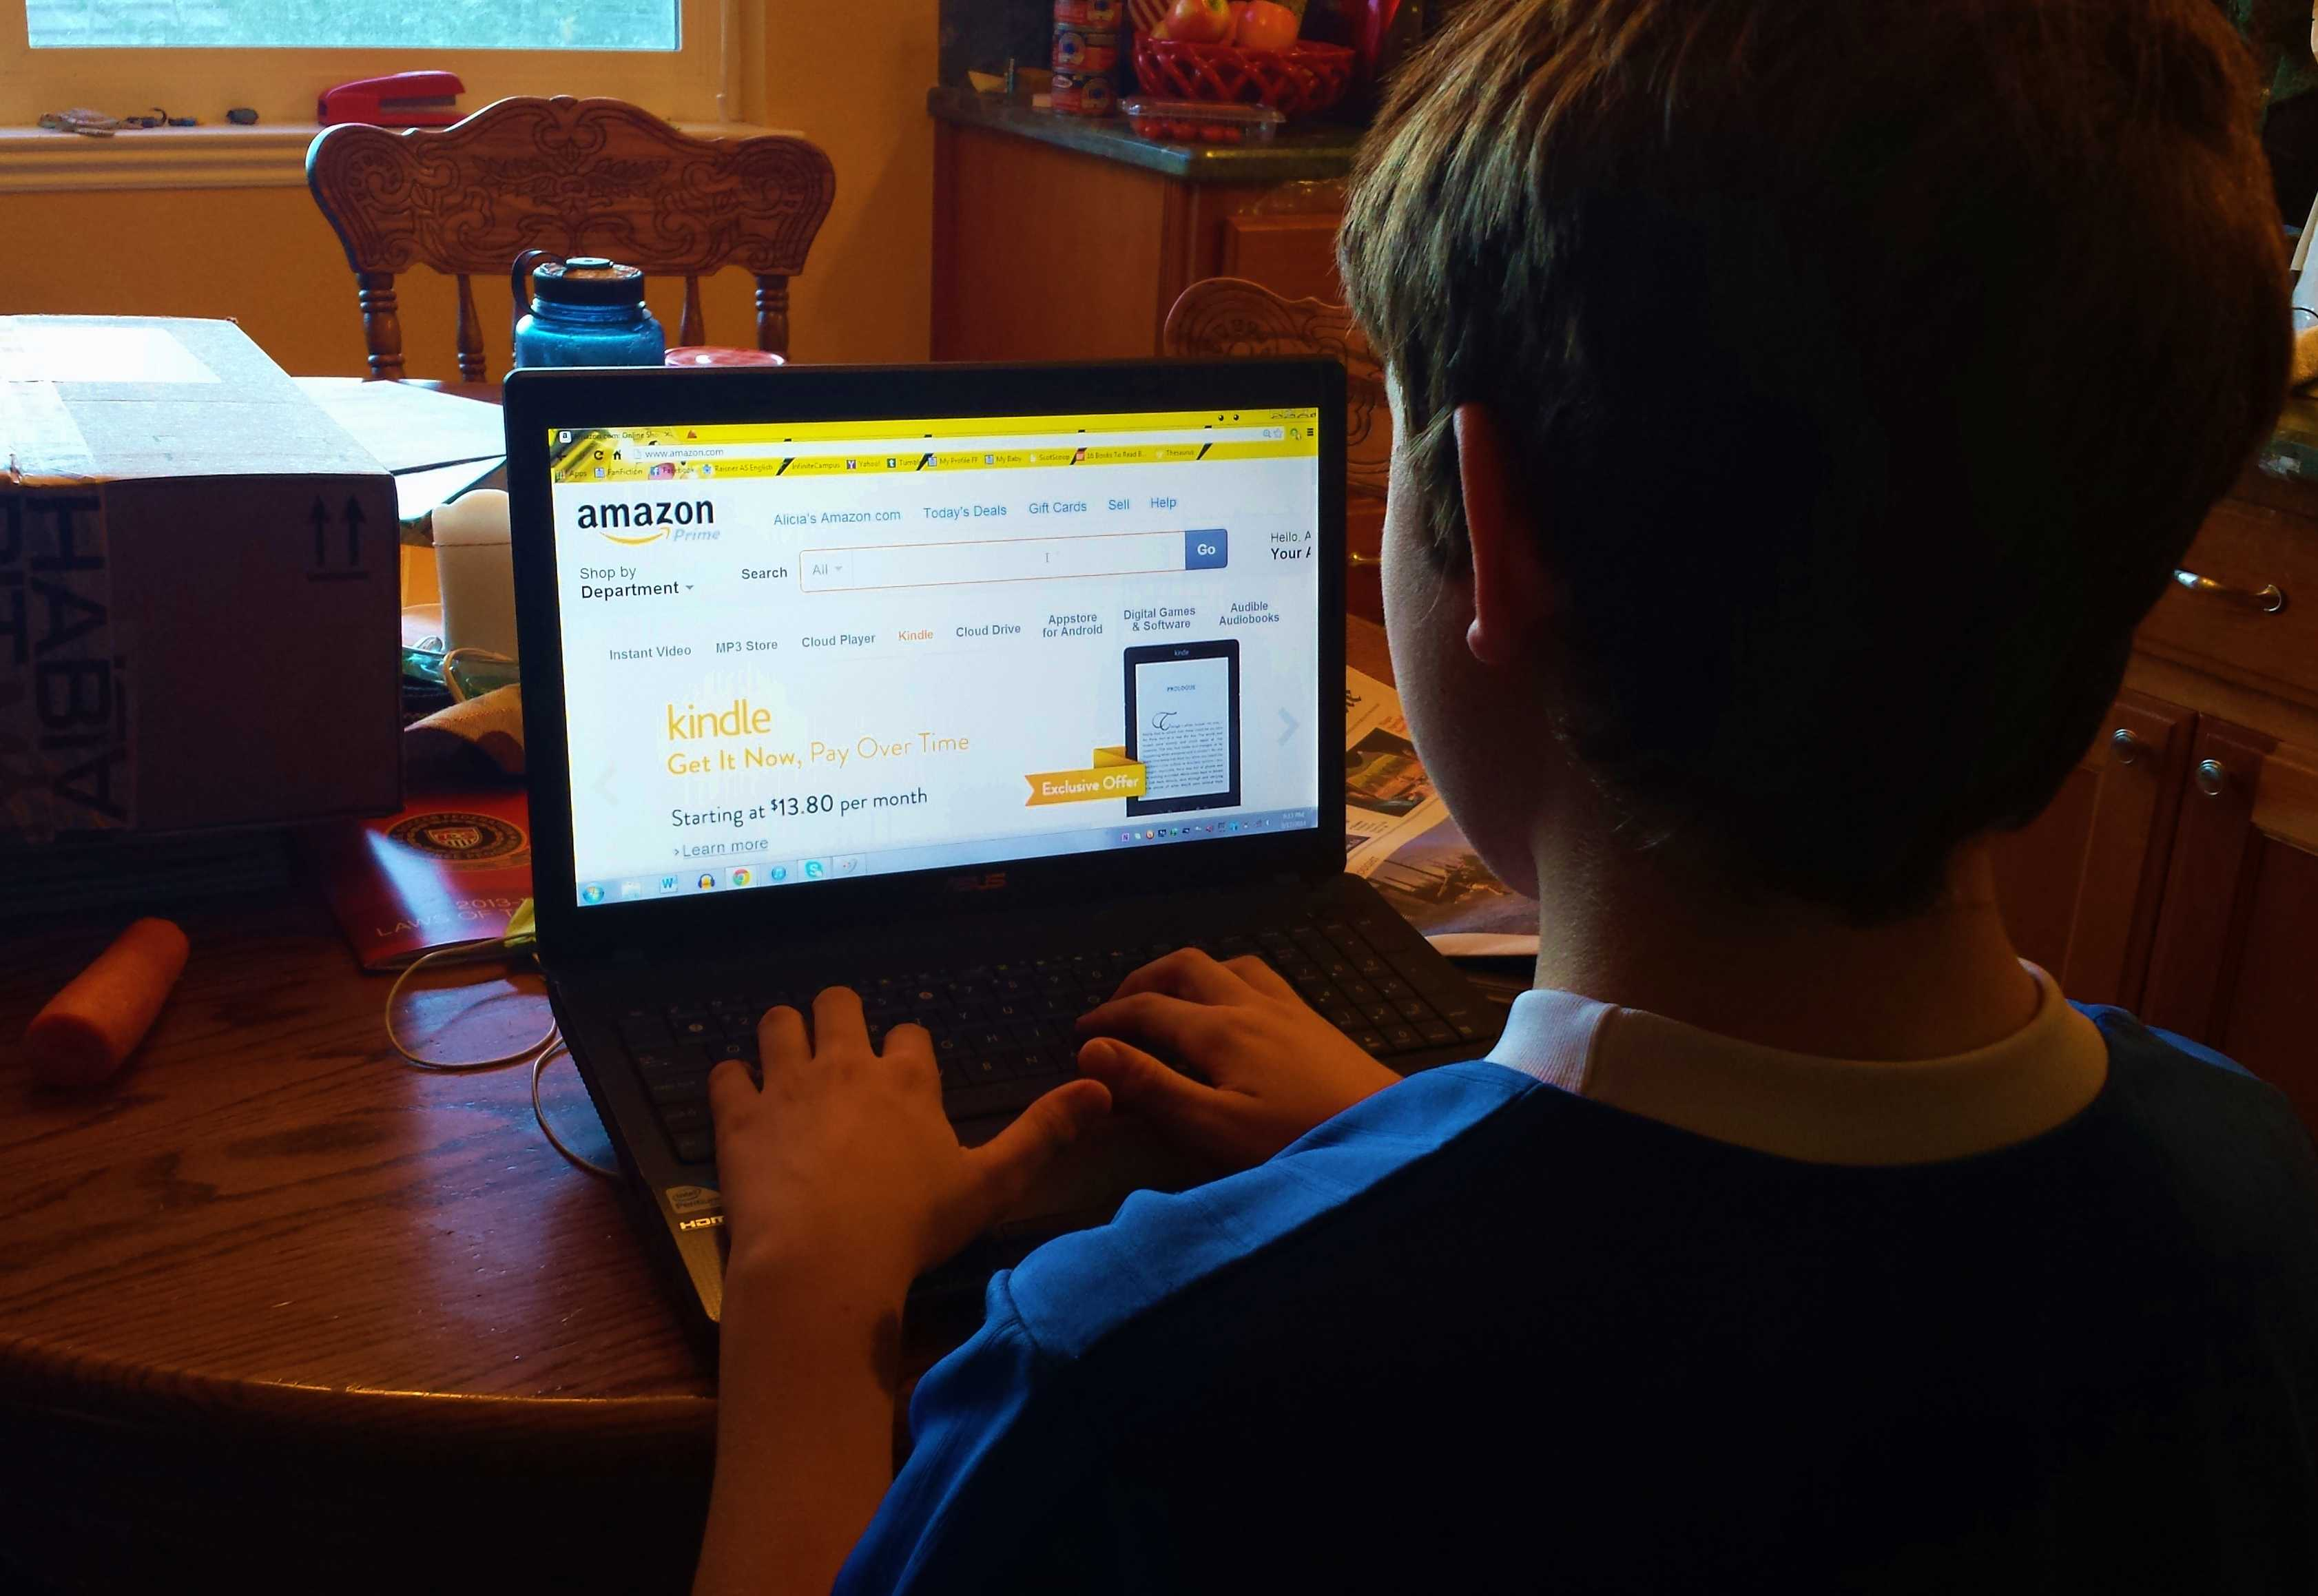 Some students at Carlmont go to Amazon.com first to purchase electronics, books, and more.